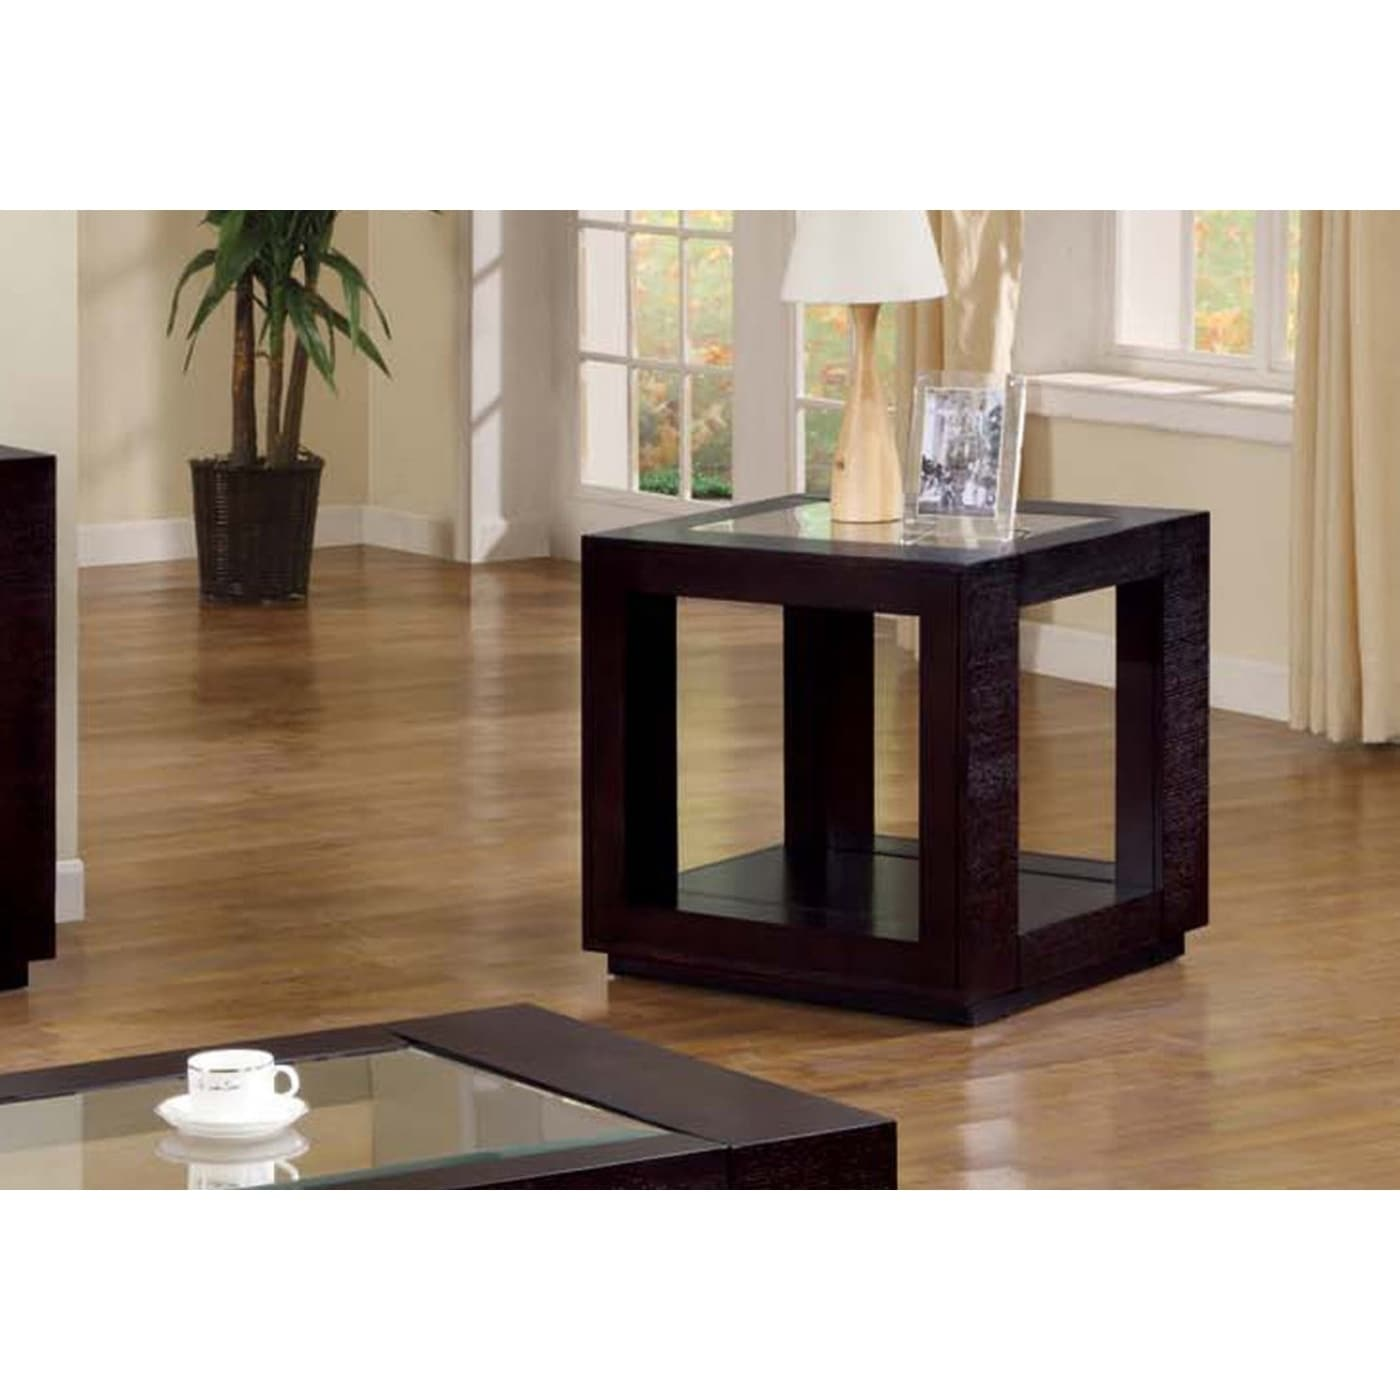 Bassett Accent Chairs 1132.Cappuccino Veneer End Table With Glass Insert